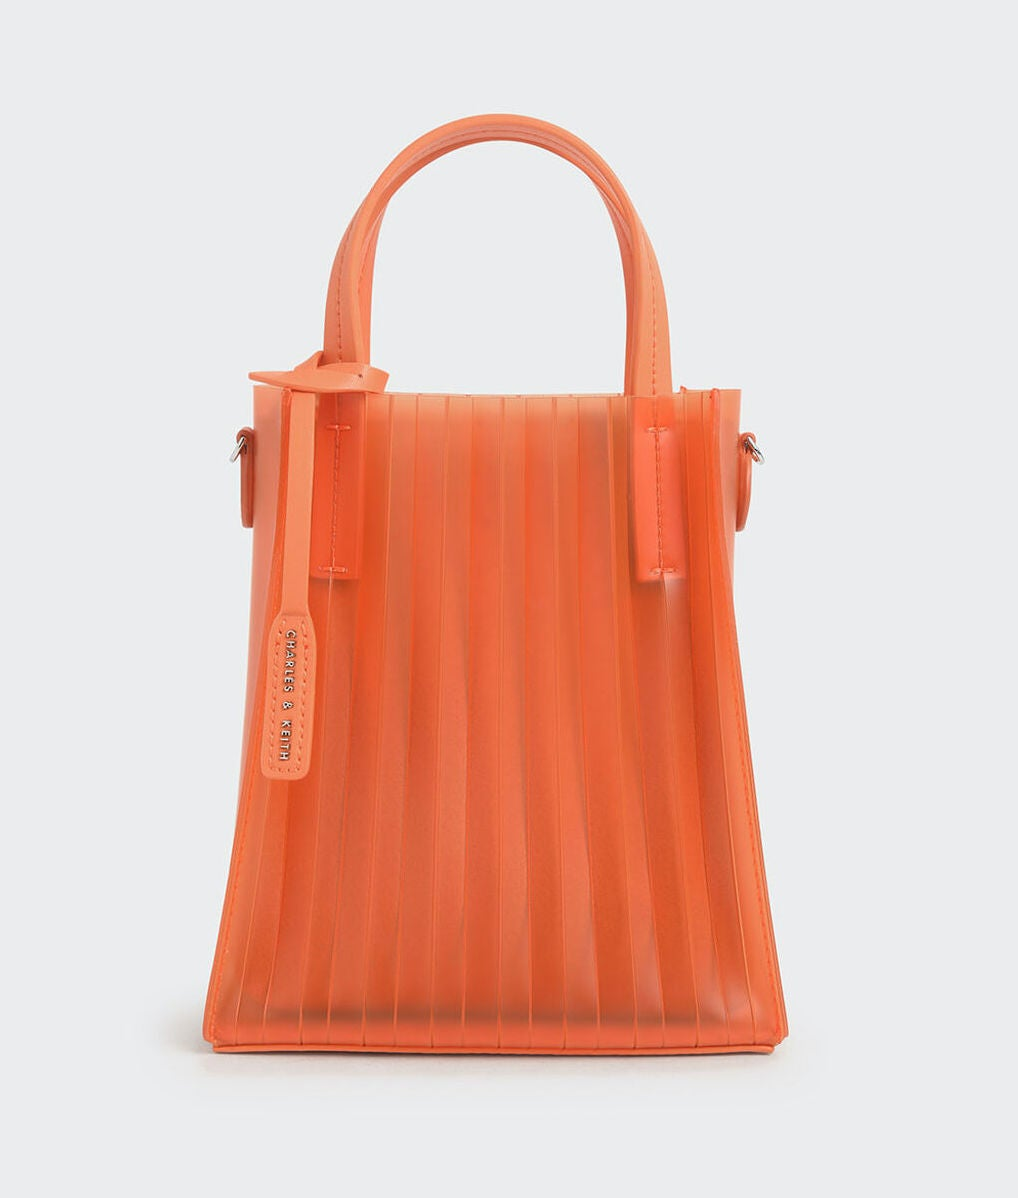 Charles & Keith Translucent Pleated Tote Bag